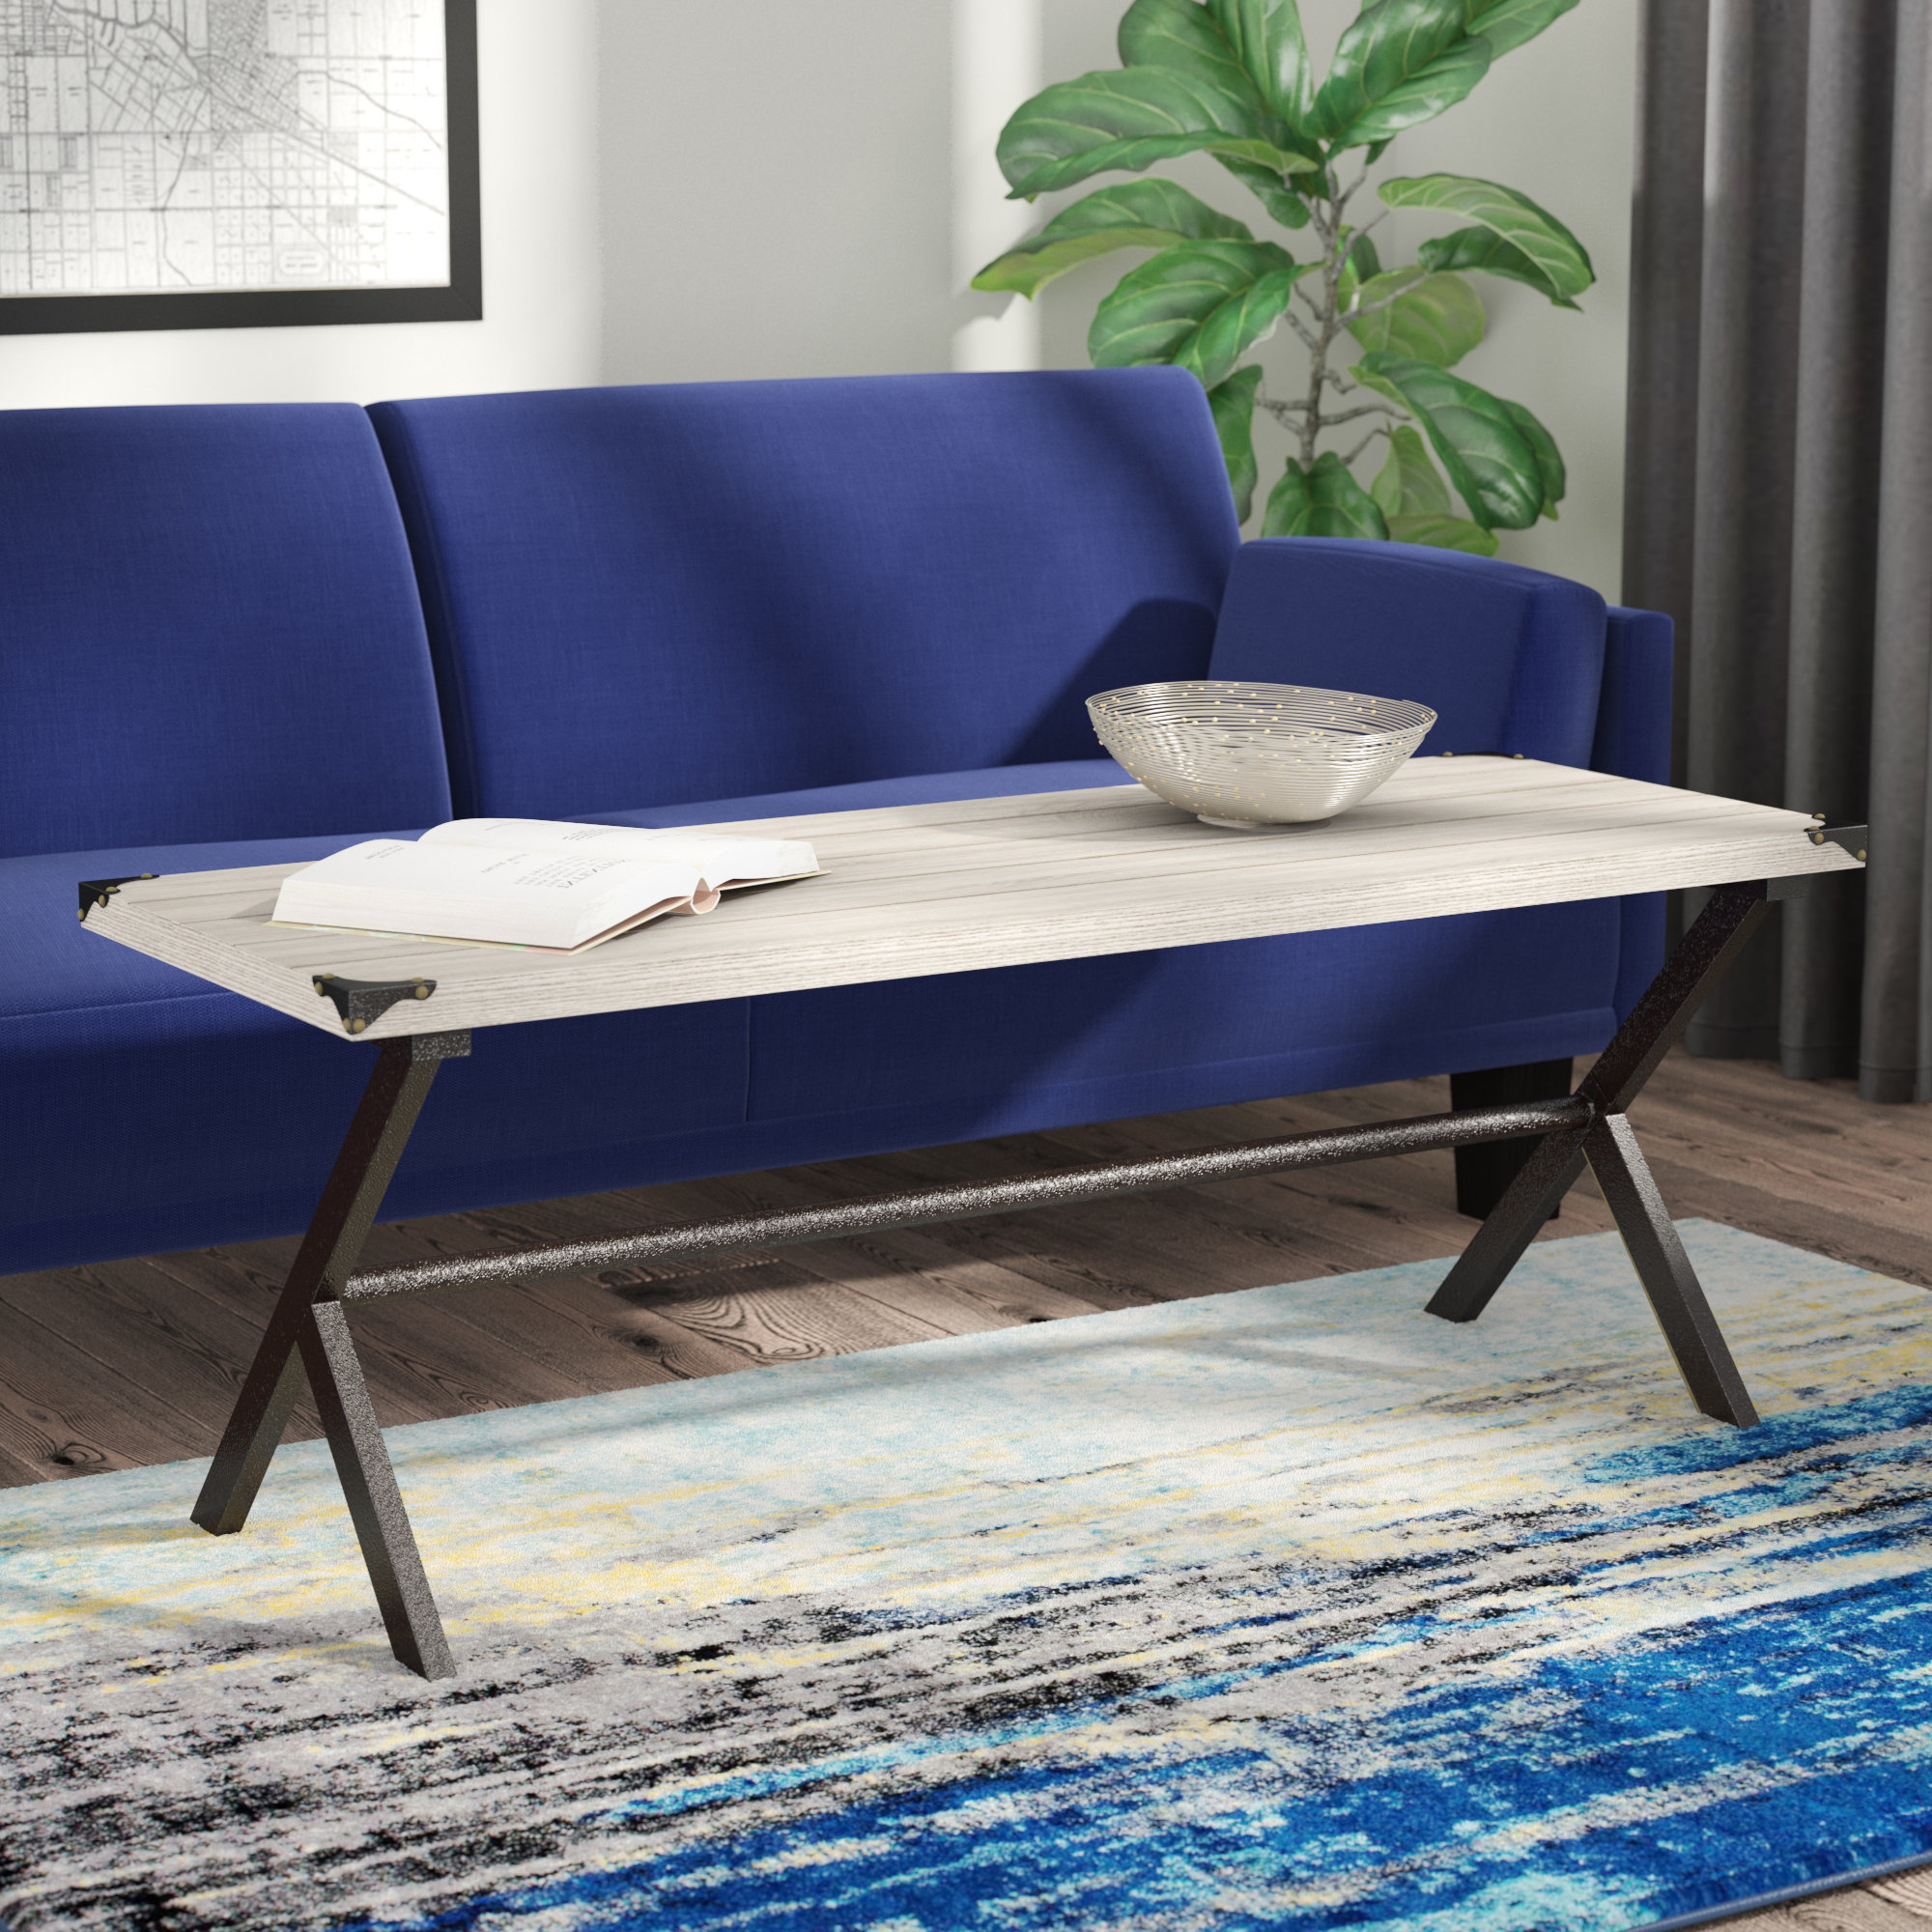 Trent Austin Design Kyra Coffee Table & Reviews | Wayfair With Kyra Console Tables (View 15 of 20)